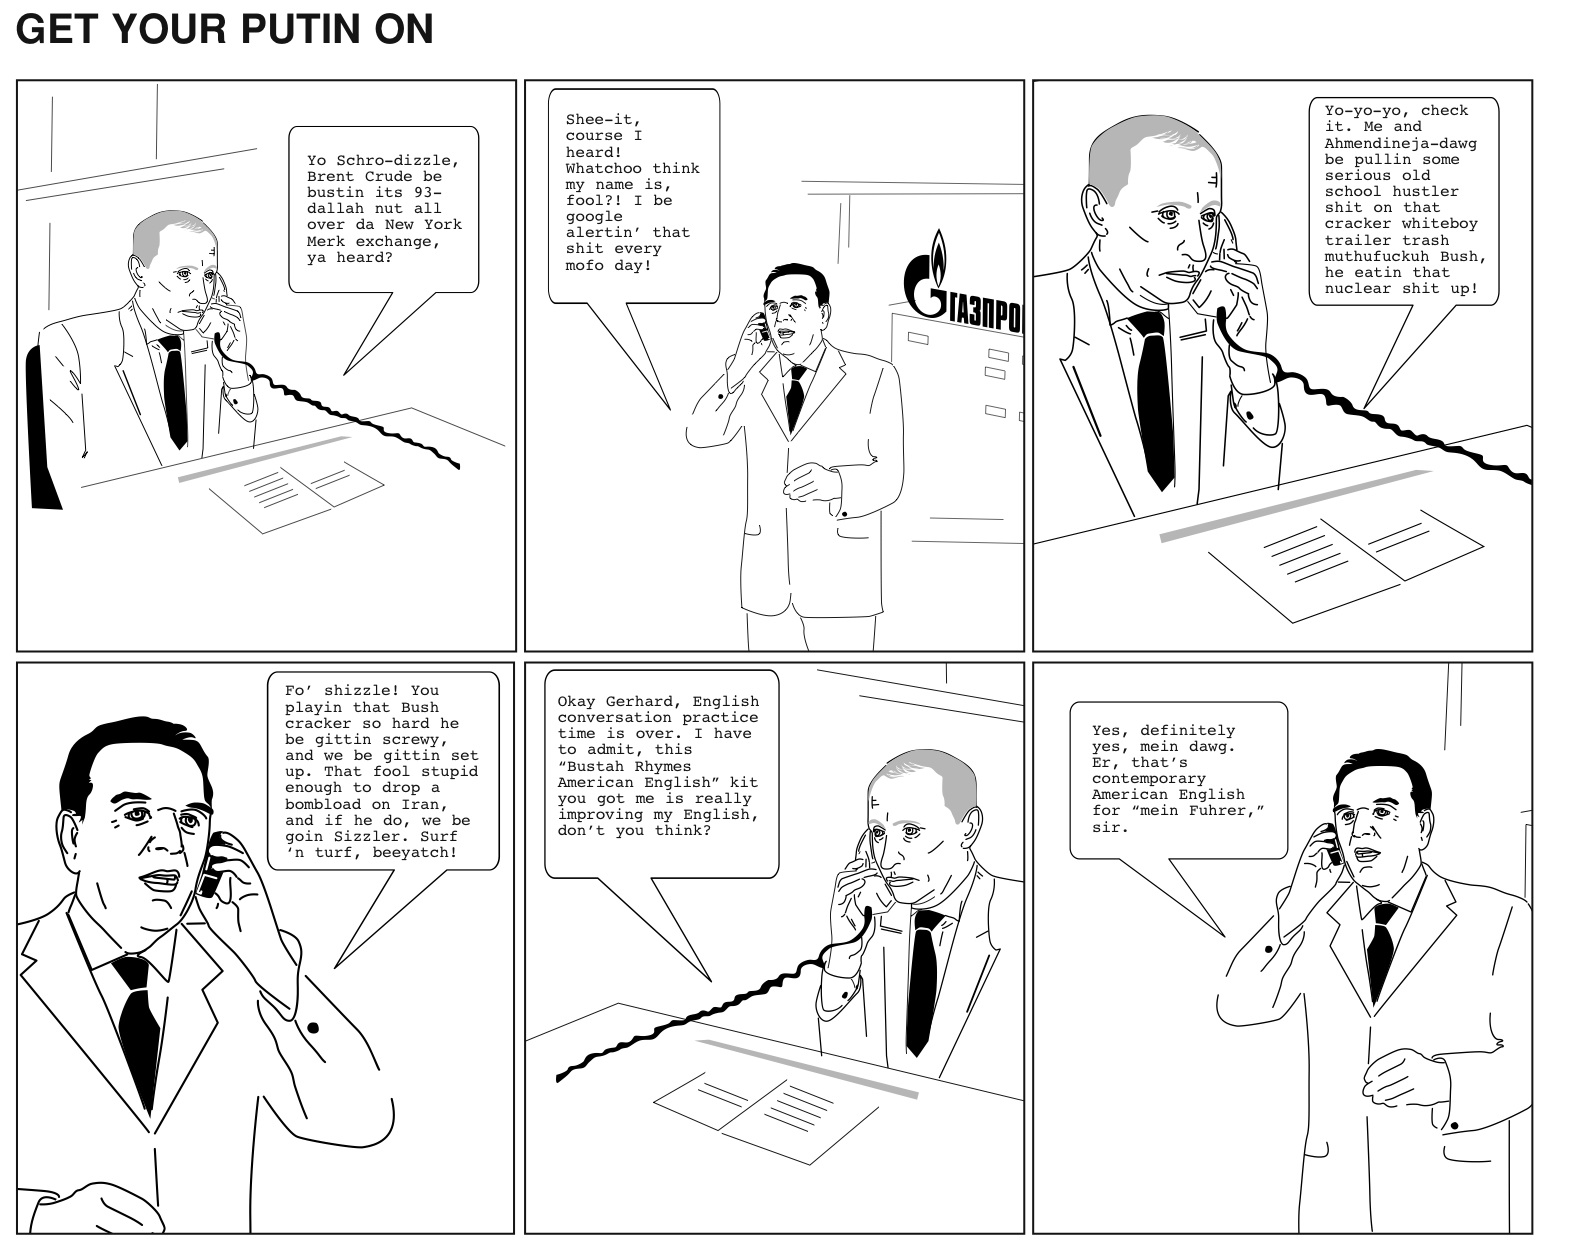 Get Your Putin On!